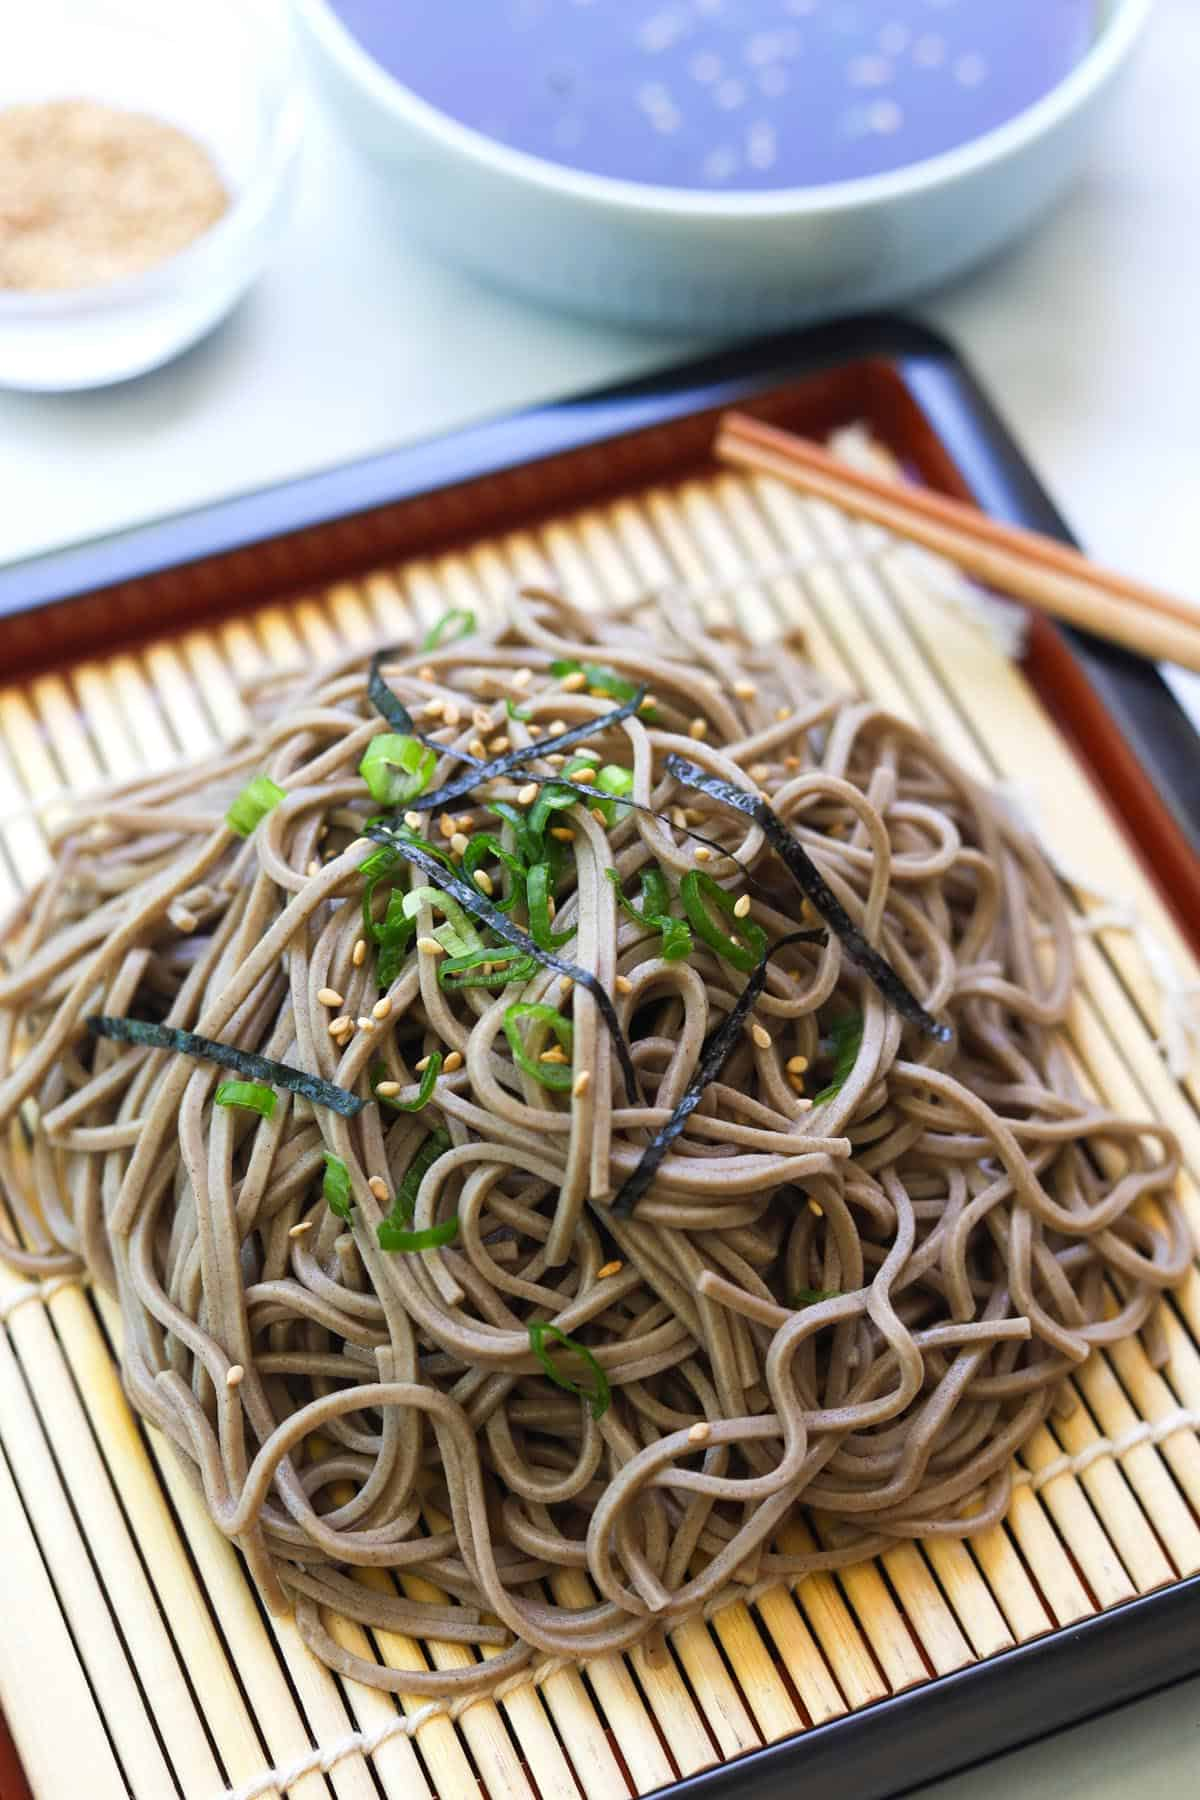 Noodles on bamboo mat.